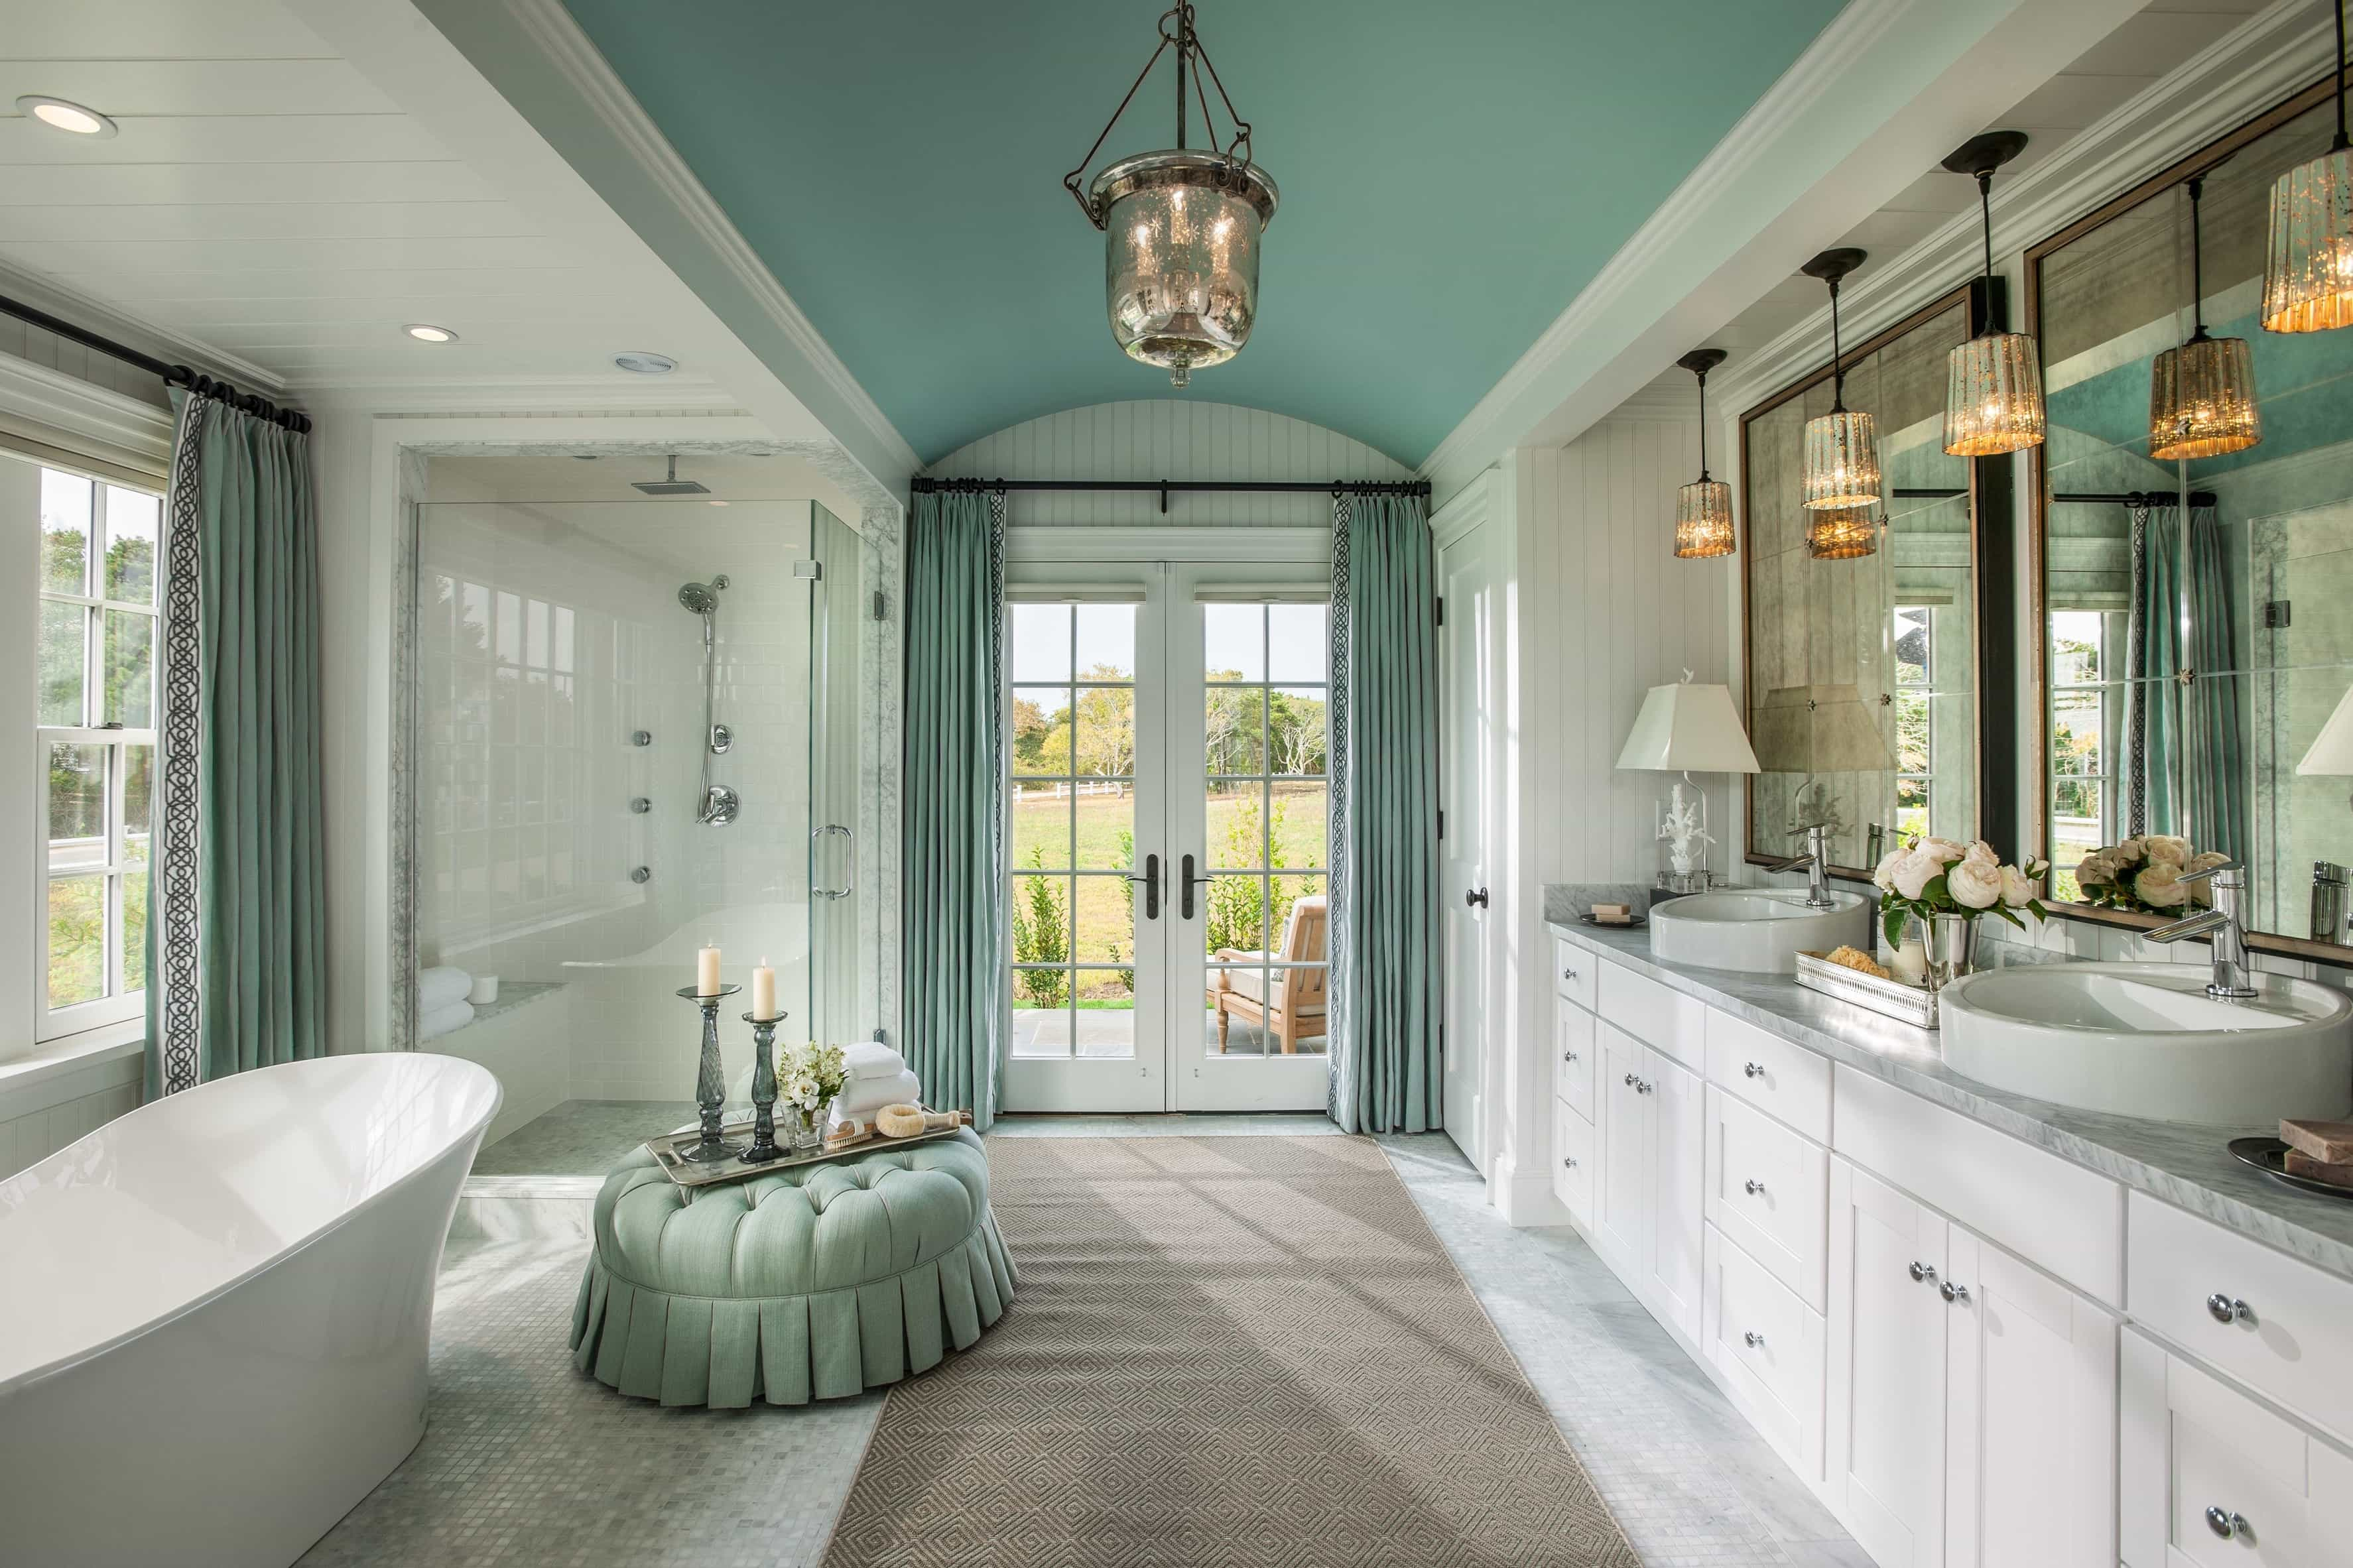 Featured Image of Gorgeous Vintage Bathroom With Luxury Nuance